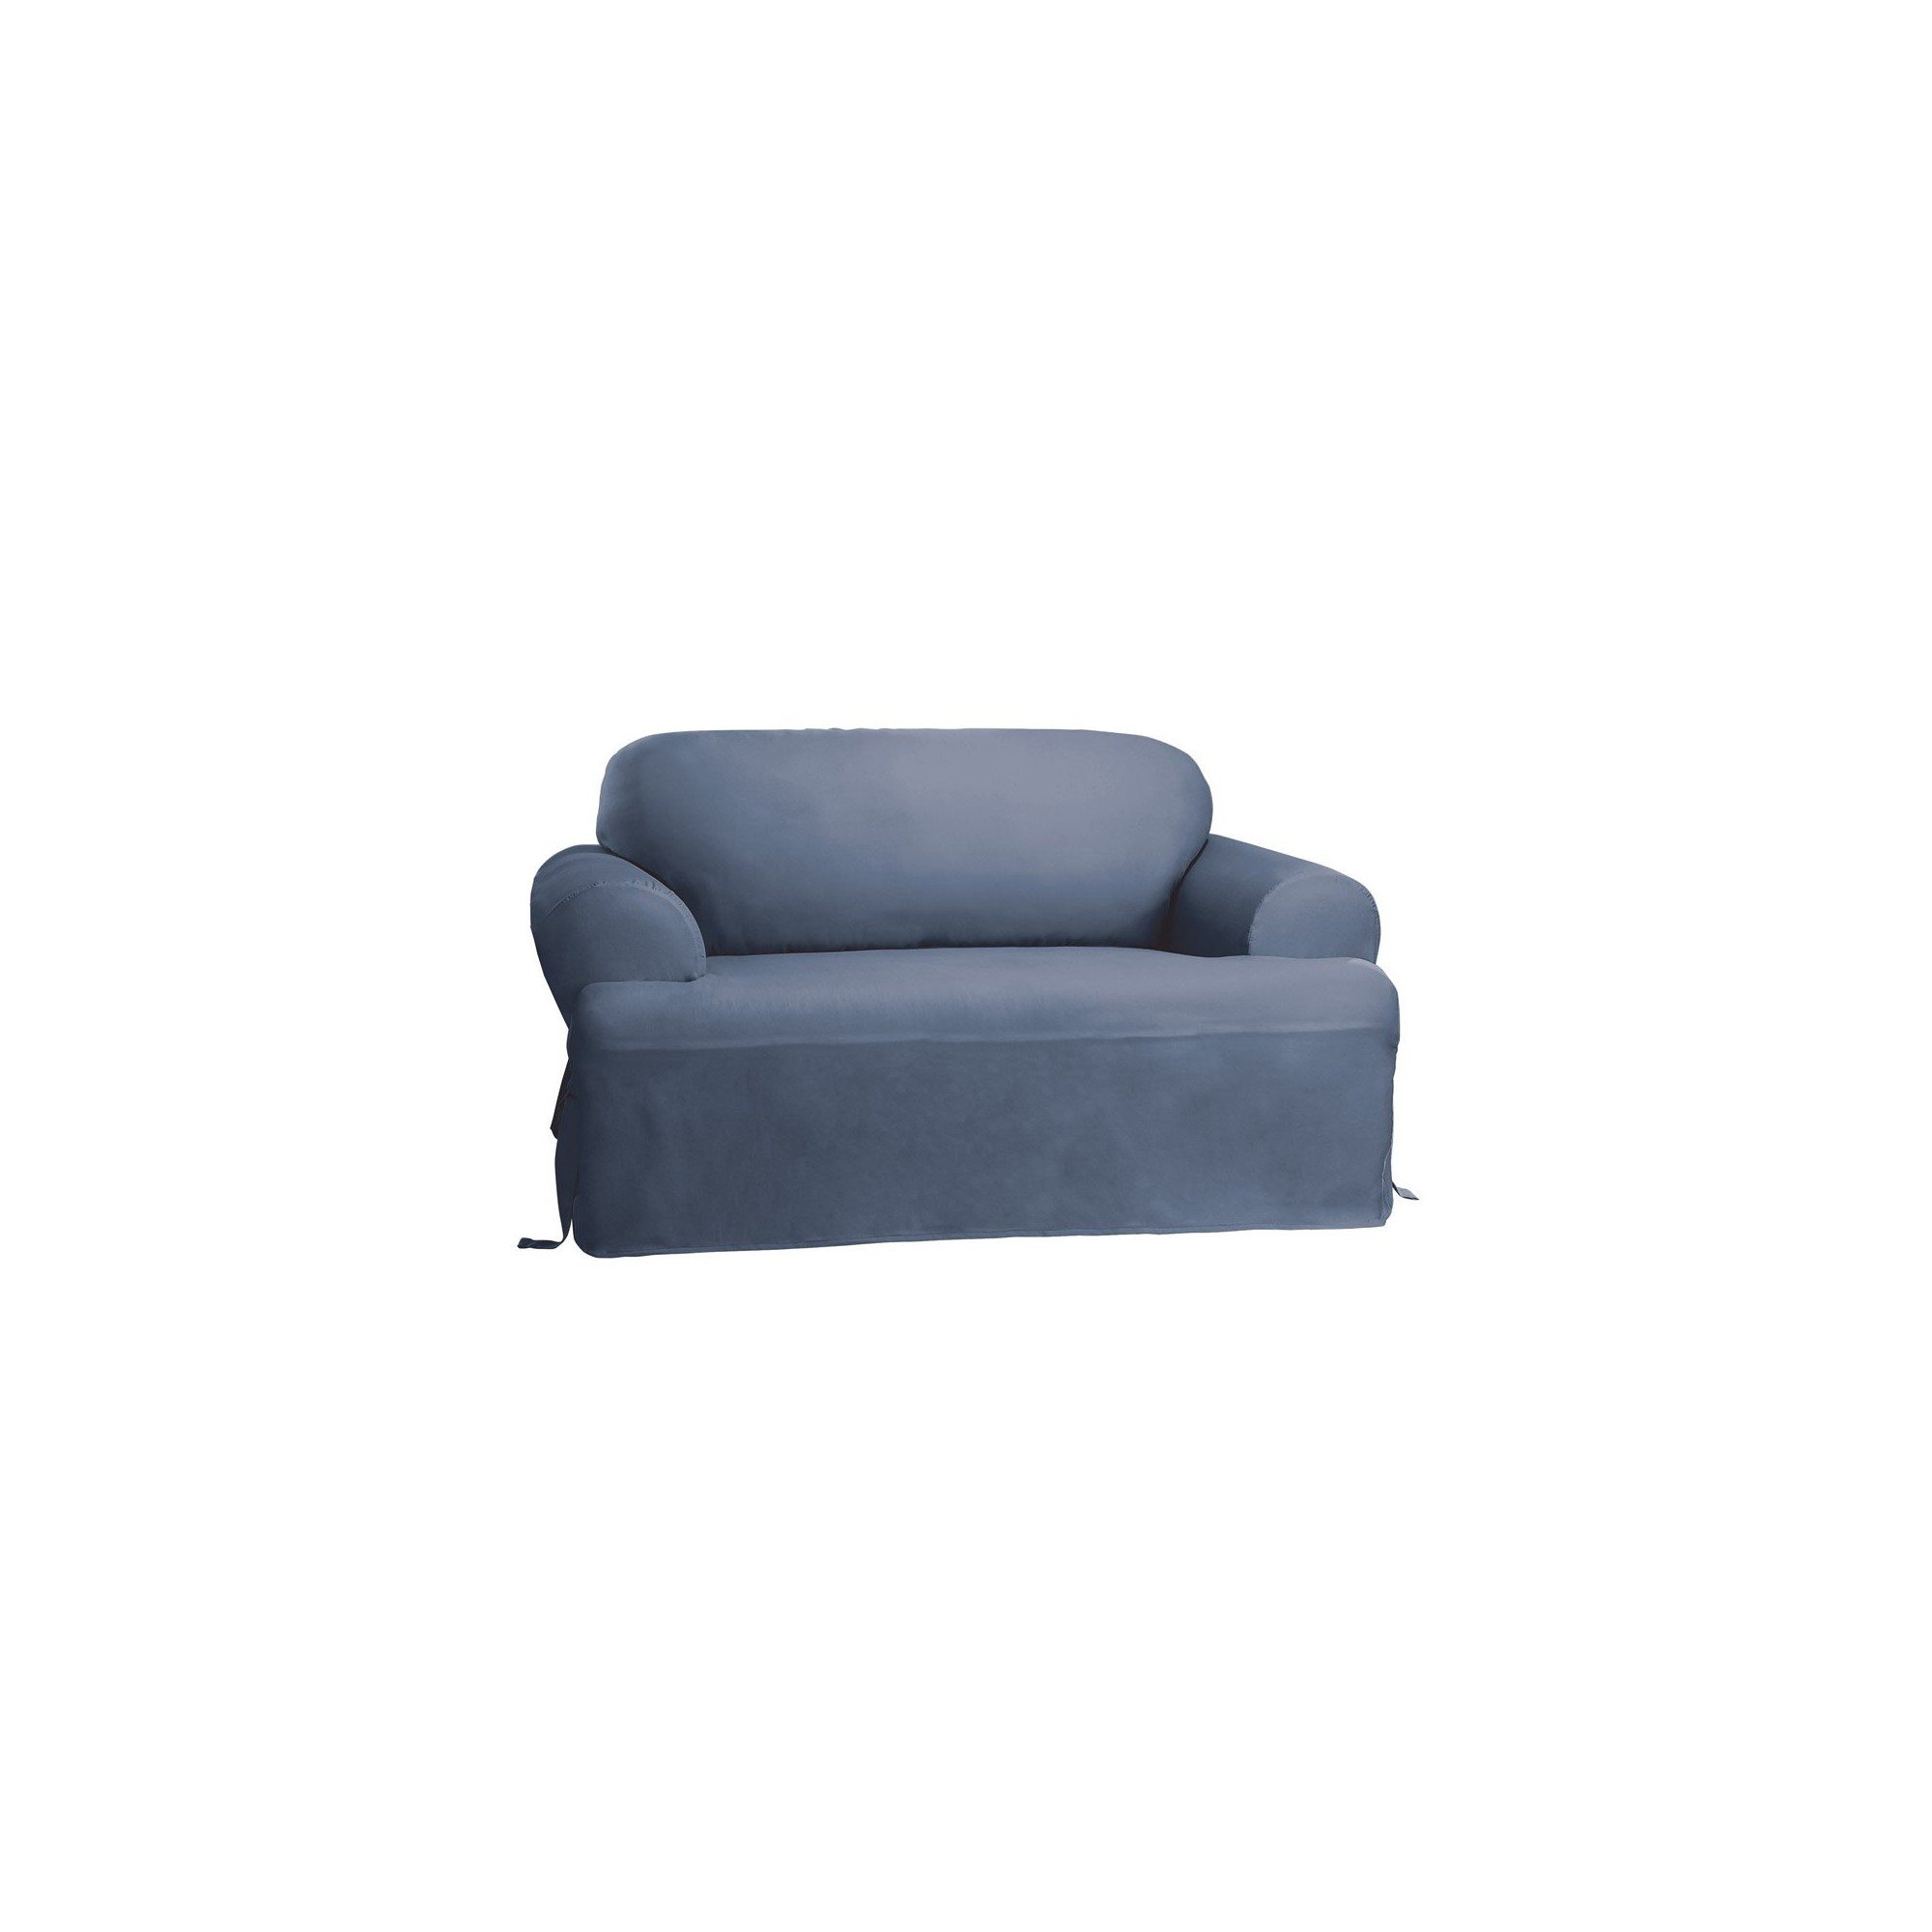 Cotton Duck Tcushion Loveseat Slipcover - Sure Fit, Blue Grey